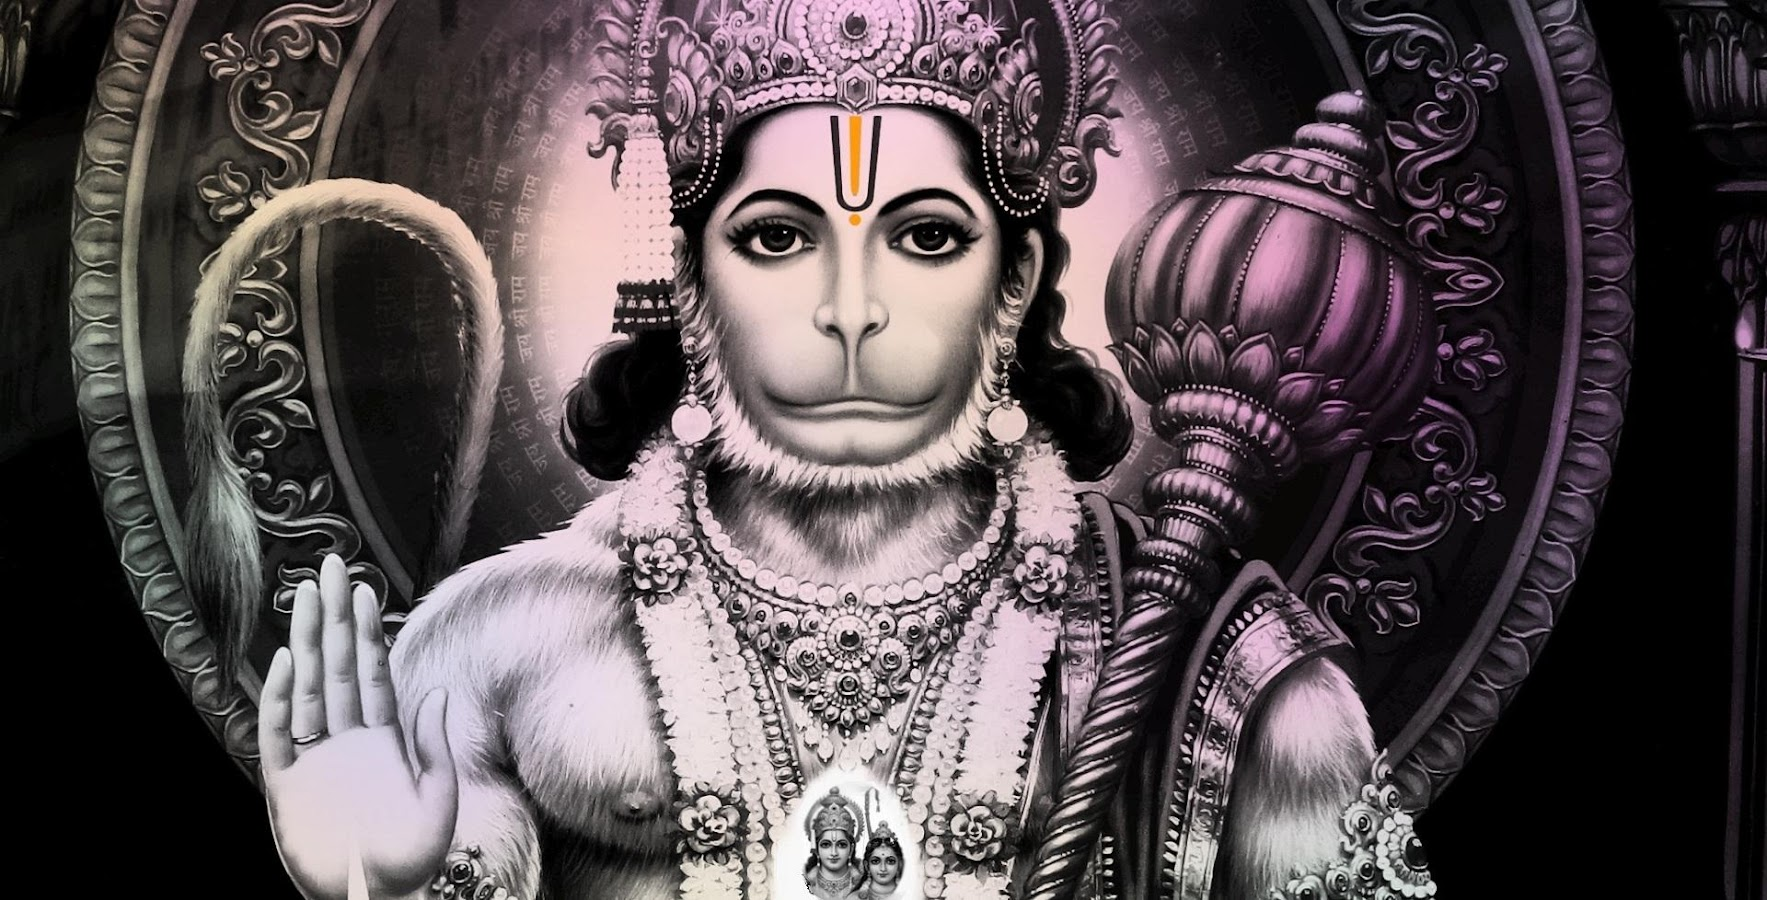 Lord Shiva Wallpapers Hd 4k 1 1 Apk Download: Lord Hanuman Wallpapers HD 4K 1.0 APK Download